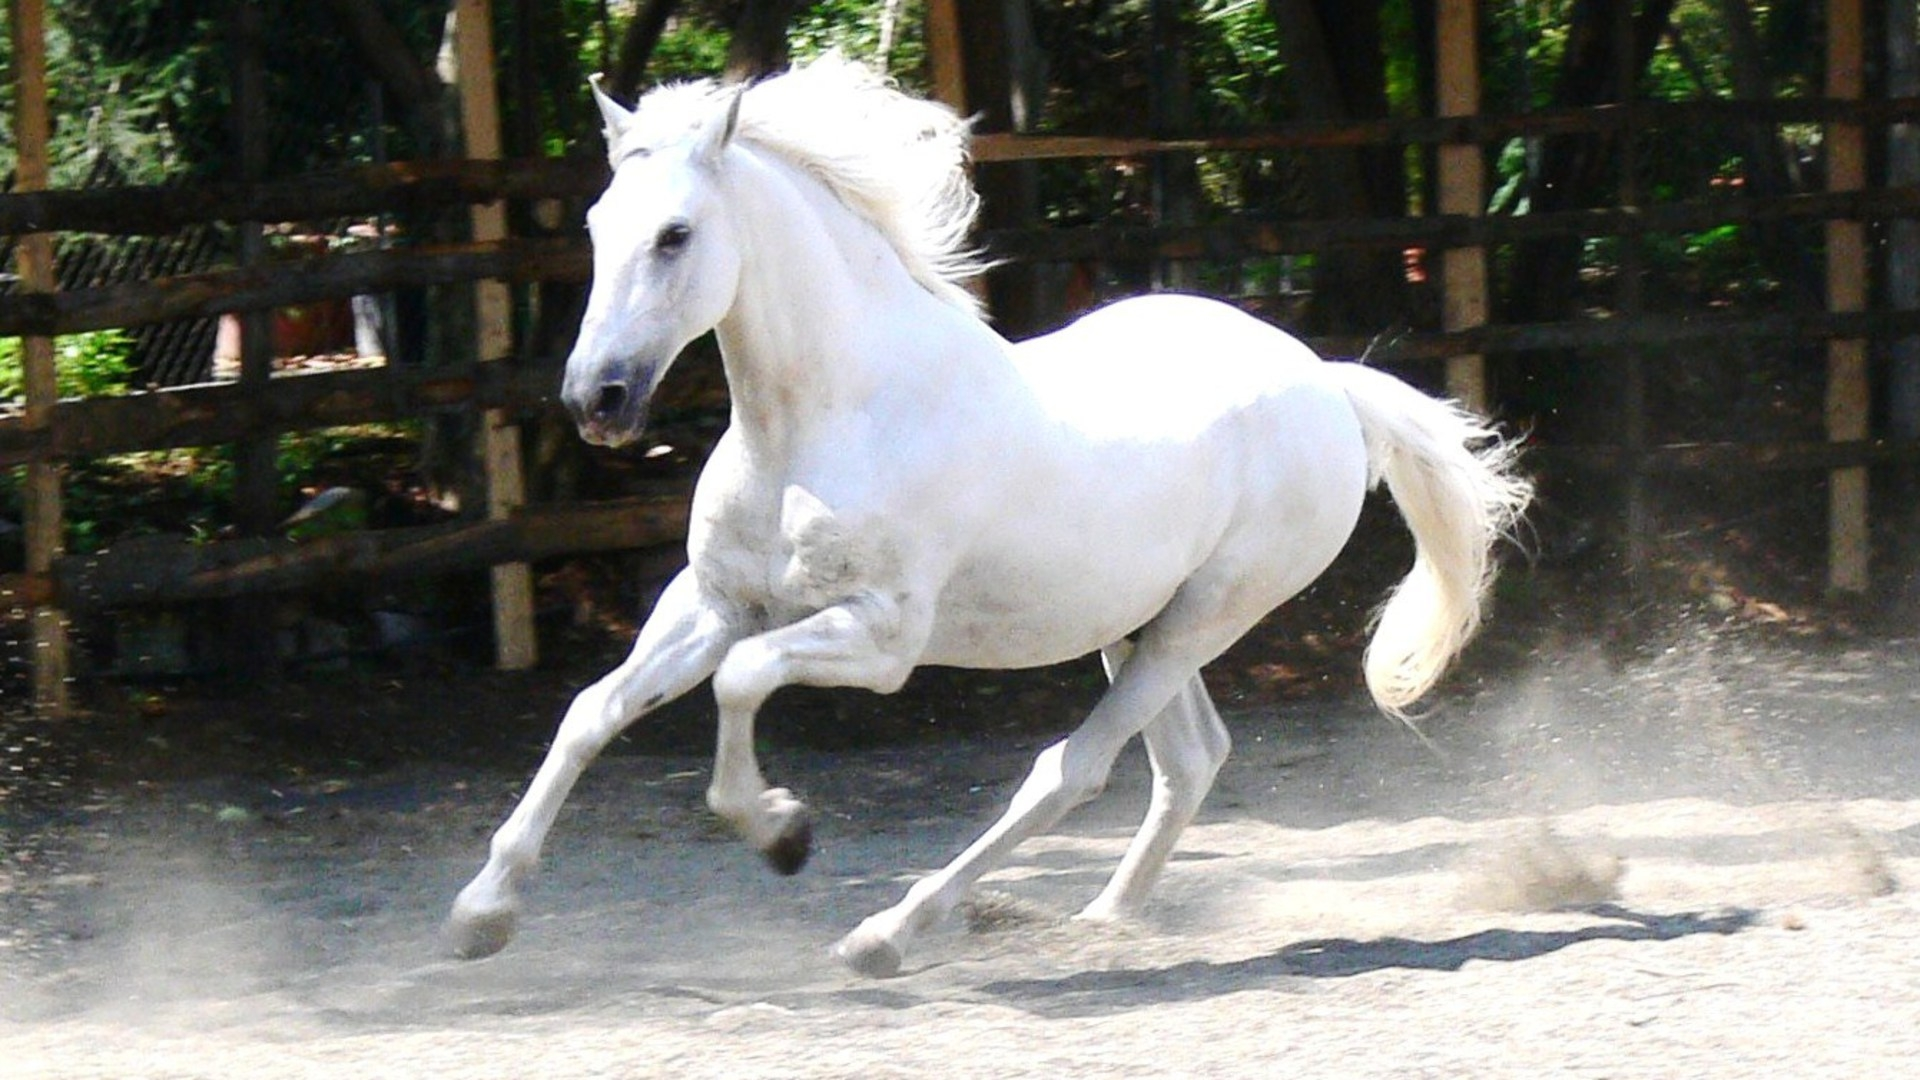 White Horse Hd Wallpapers - Lovely Desktop Background And Widescreen Images 01